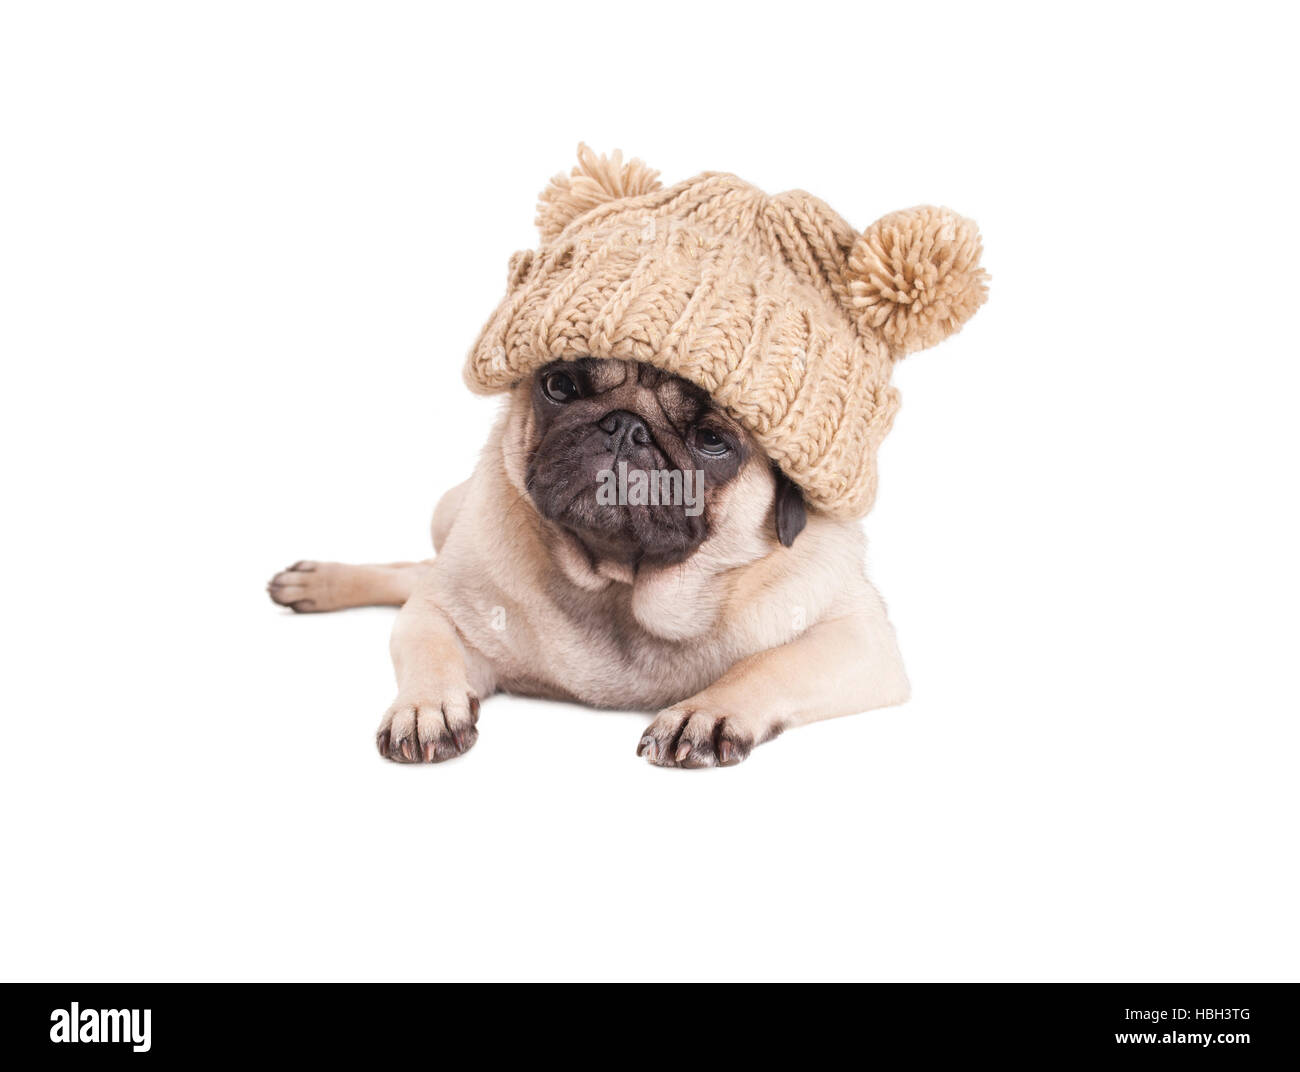 lovely pug puppy dog lying down and wearing knitted hat with pompoms, isolated on white background - Stock Image